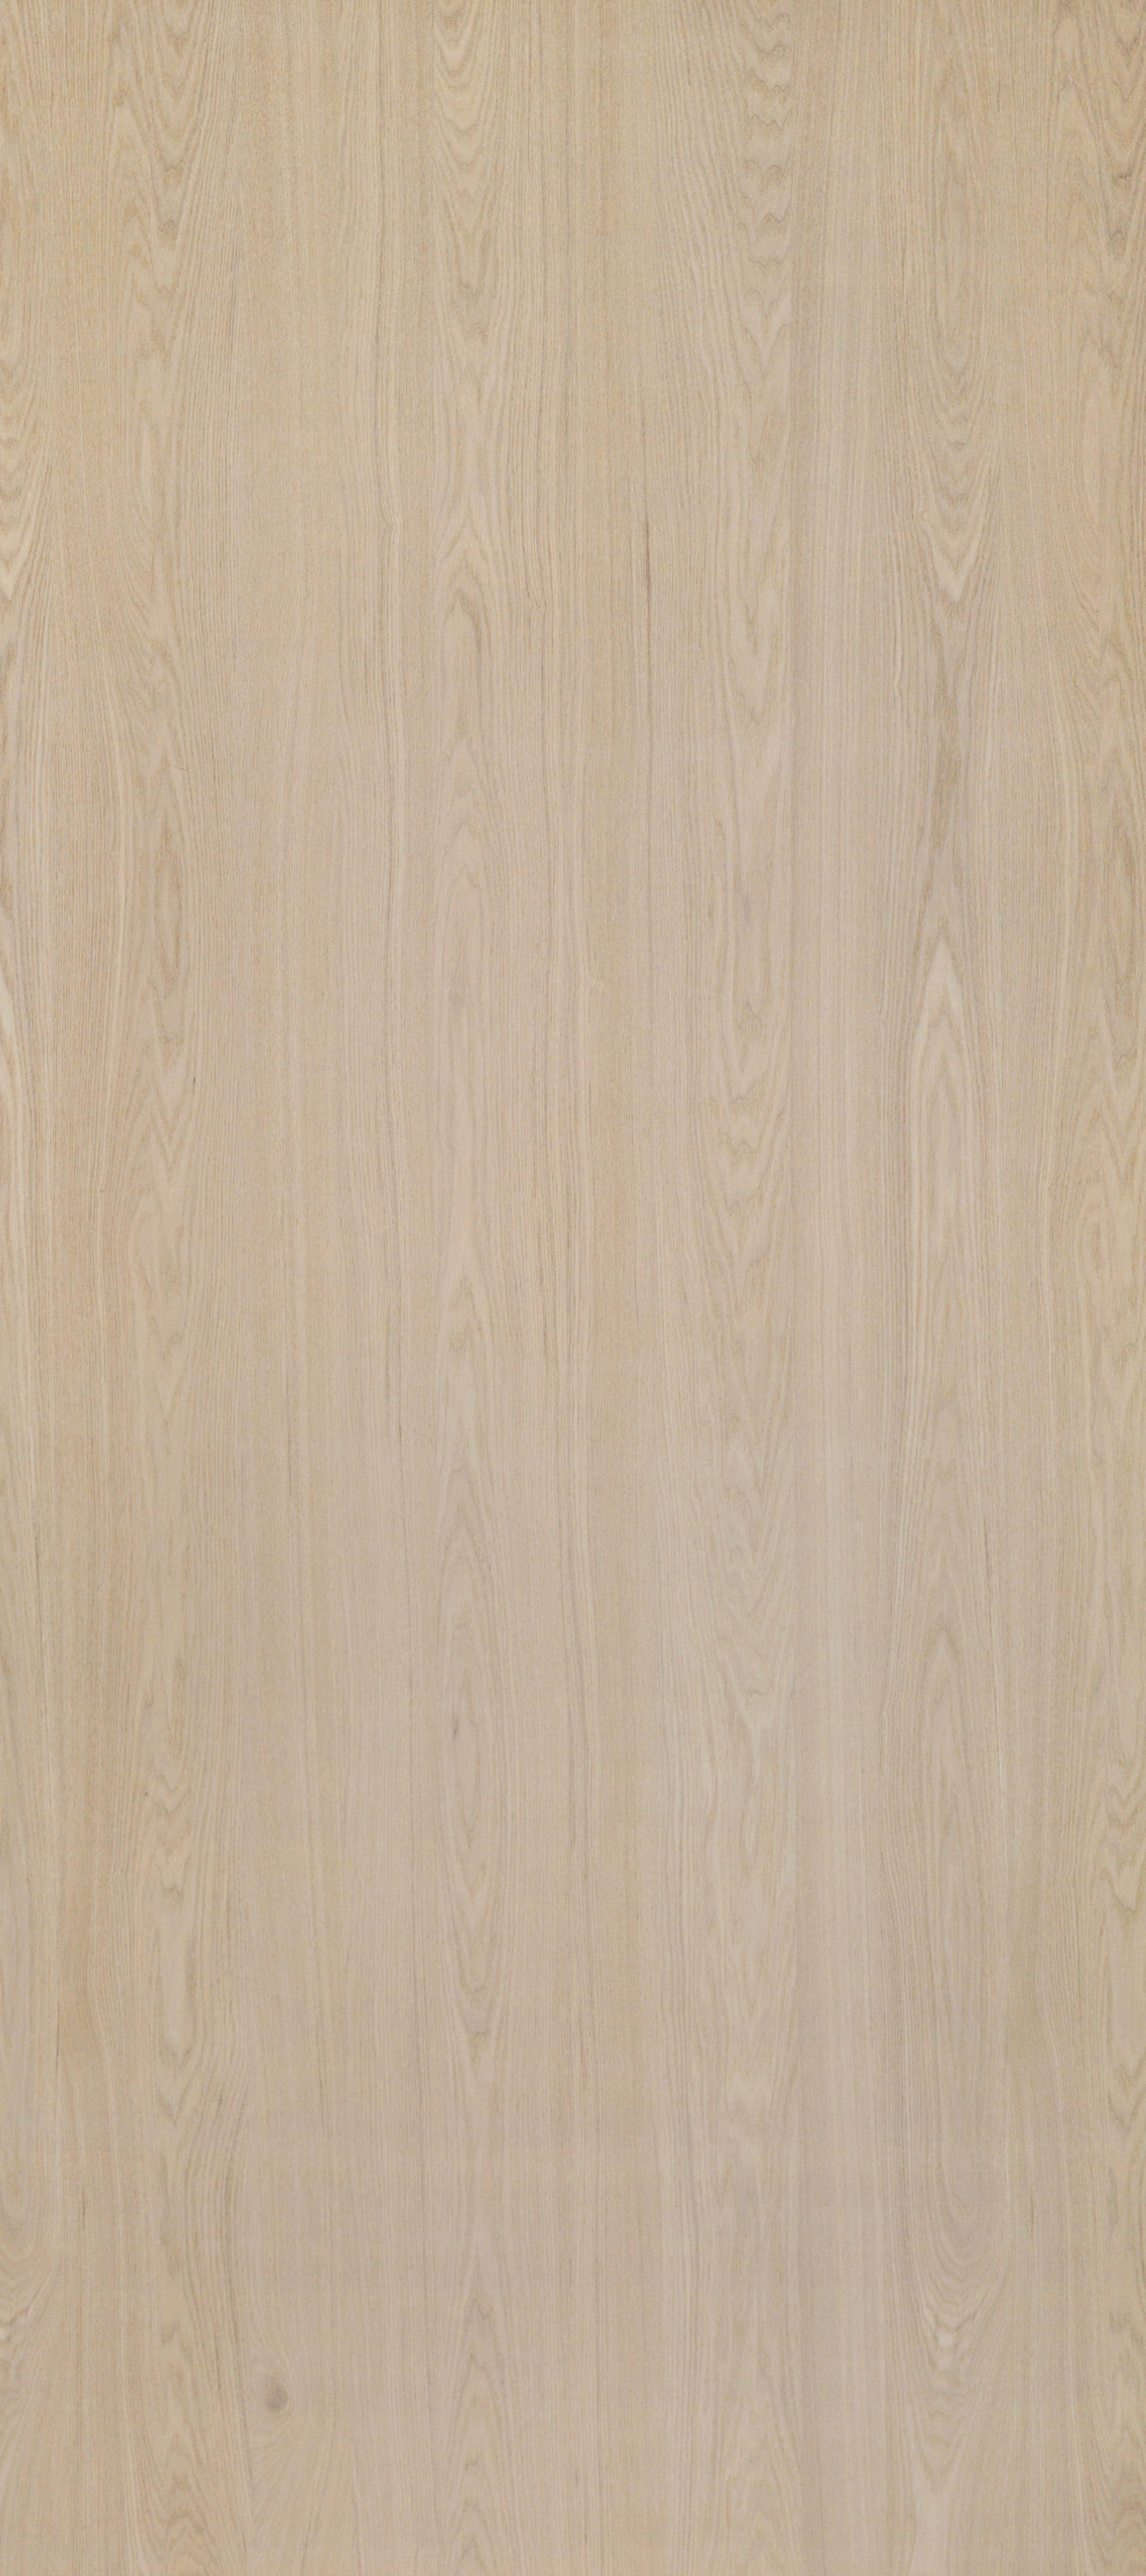 Shinnoki Sand Ash Wall Veneers From Decospan Architonic